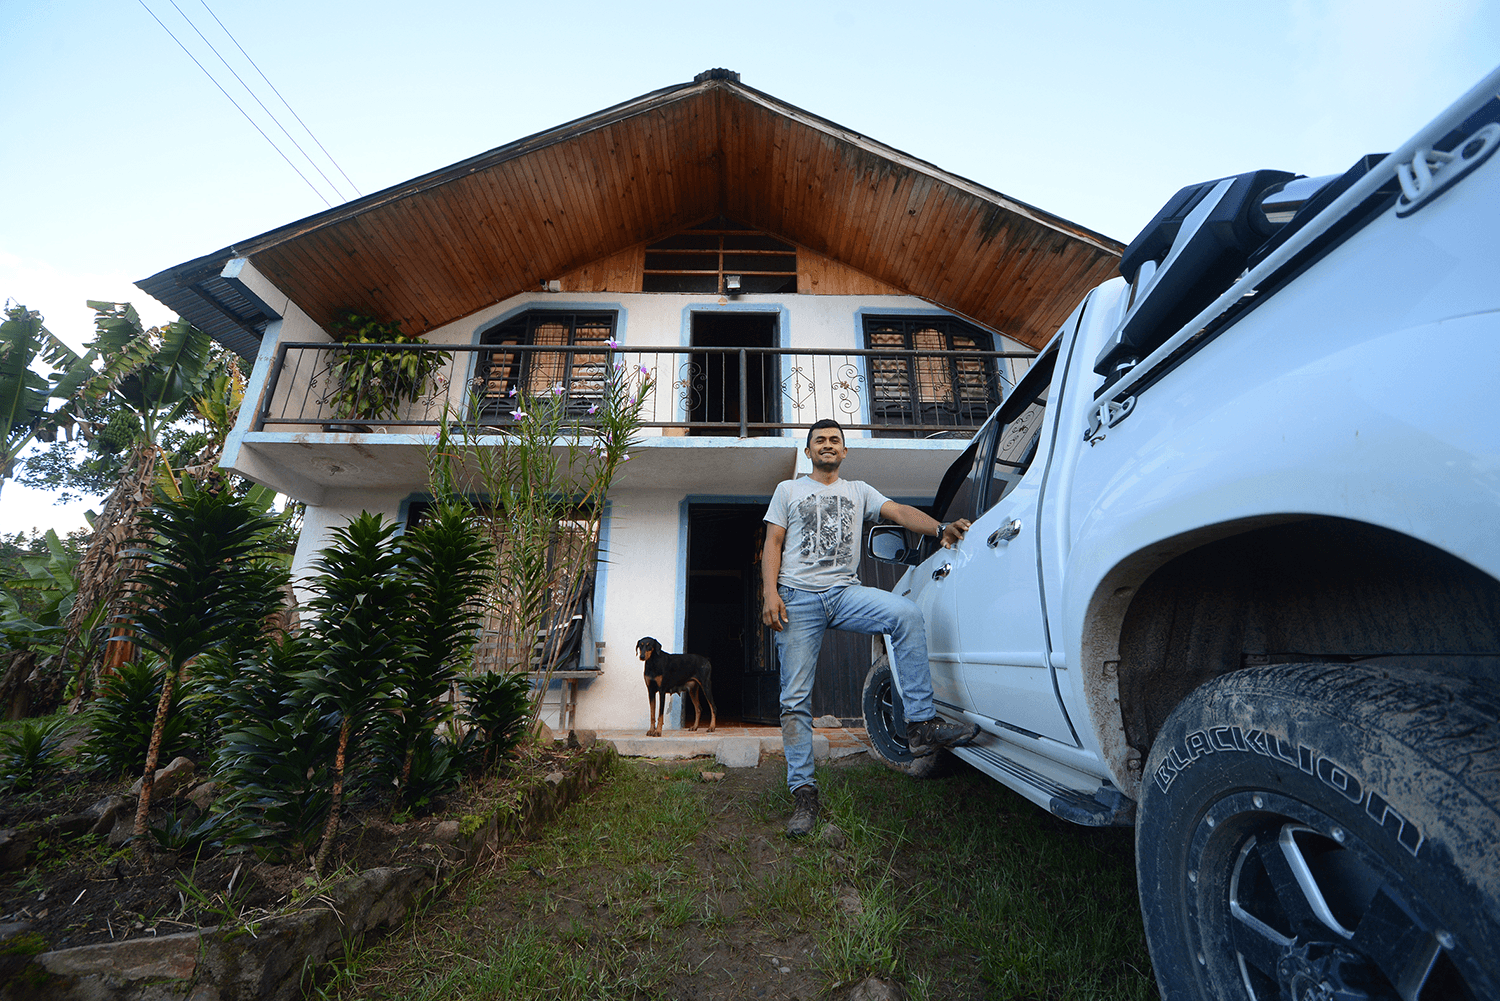 colombian coffee farmer in front of his house